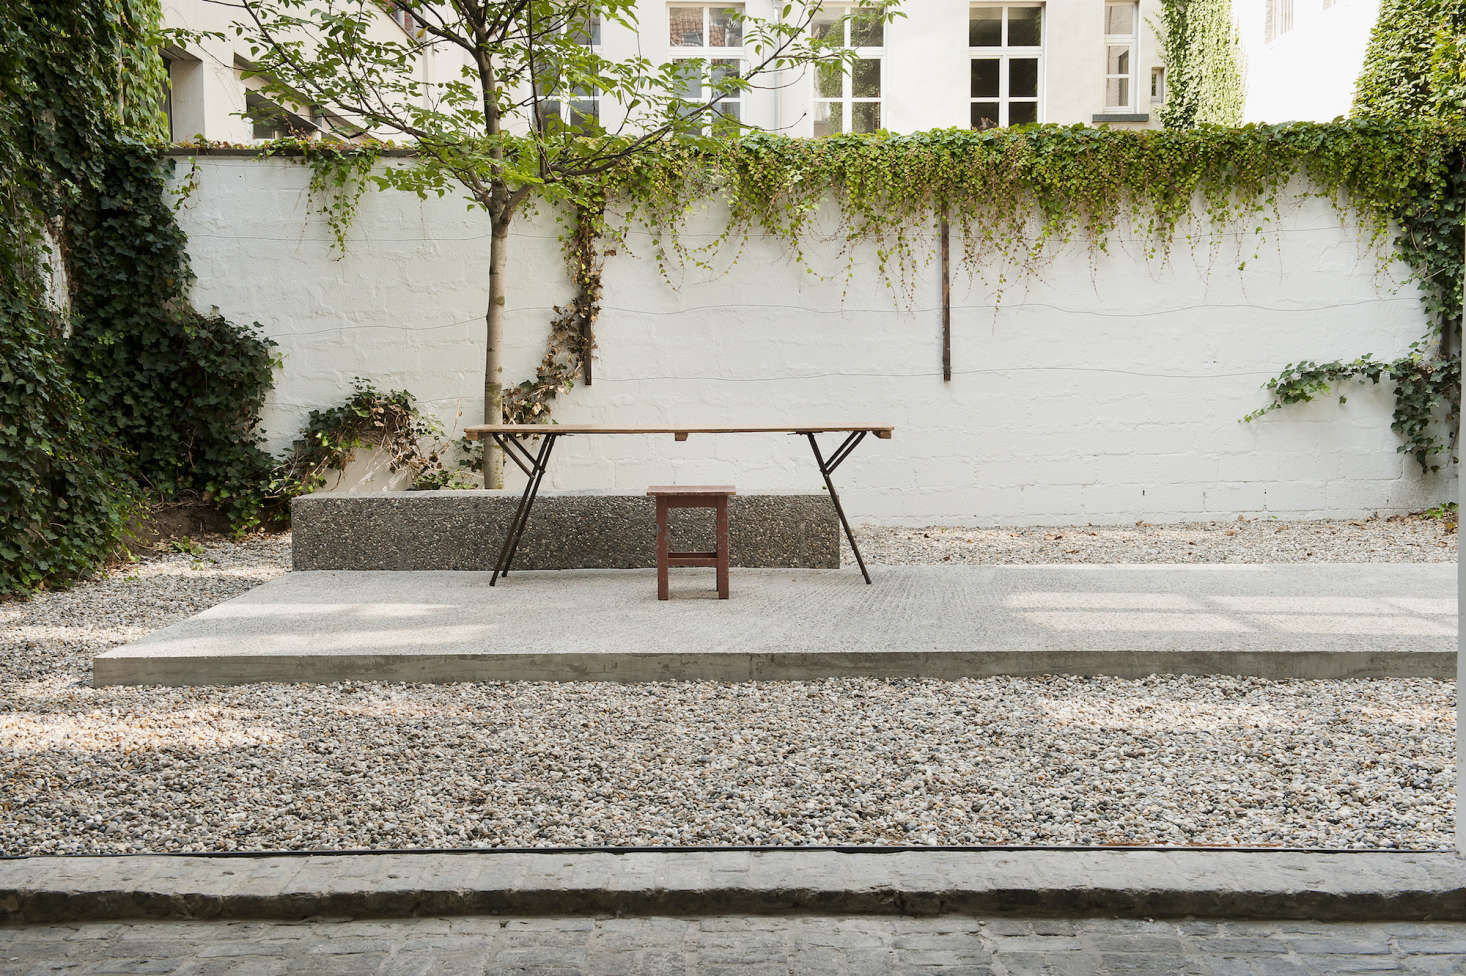 The simple, but striking courtyard space.